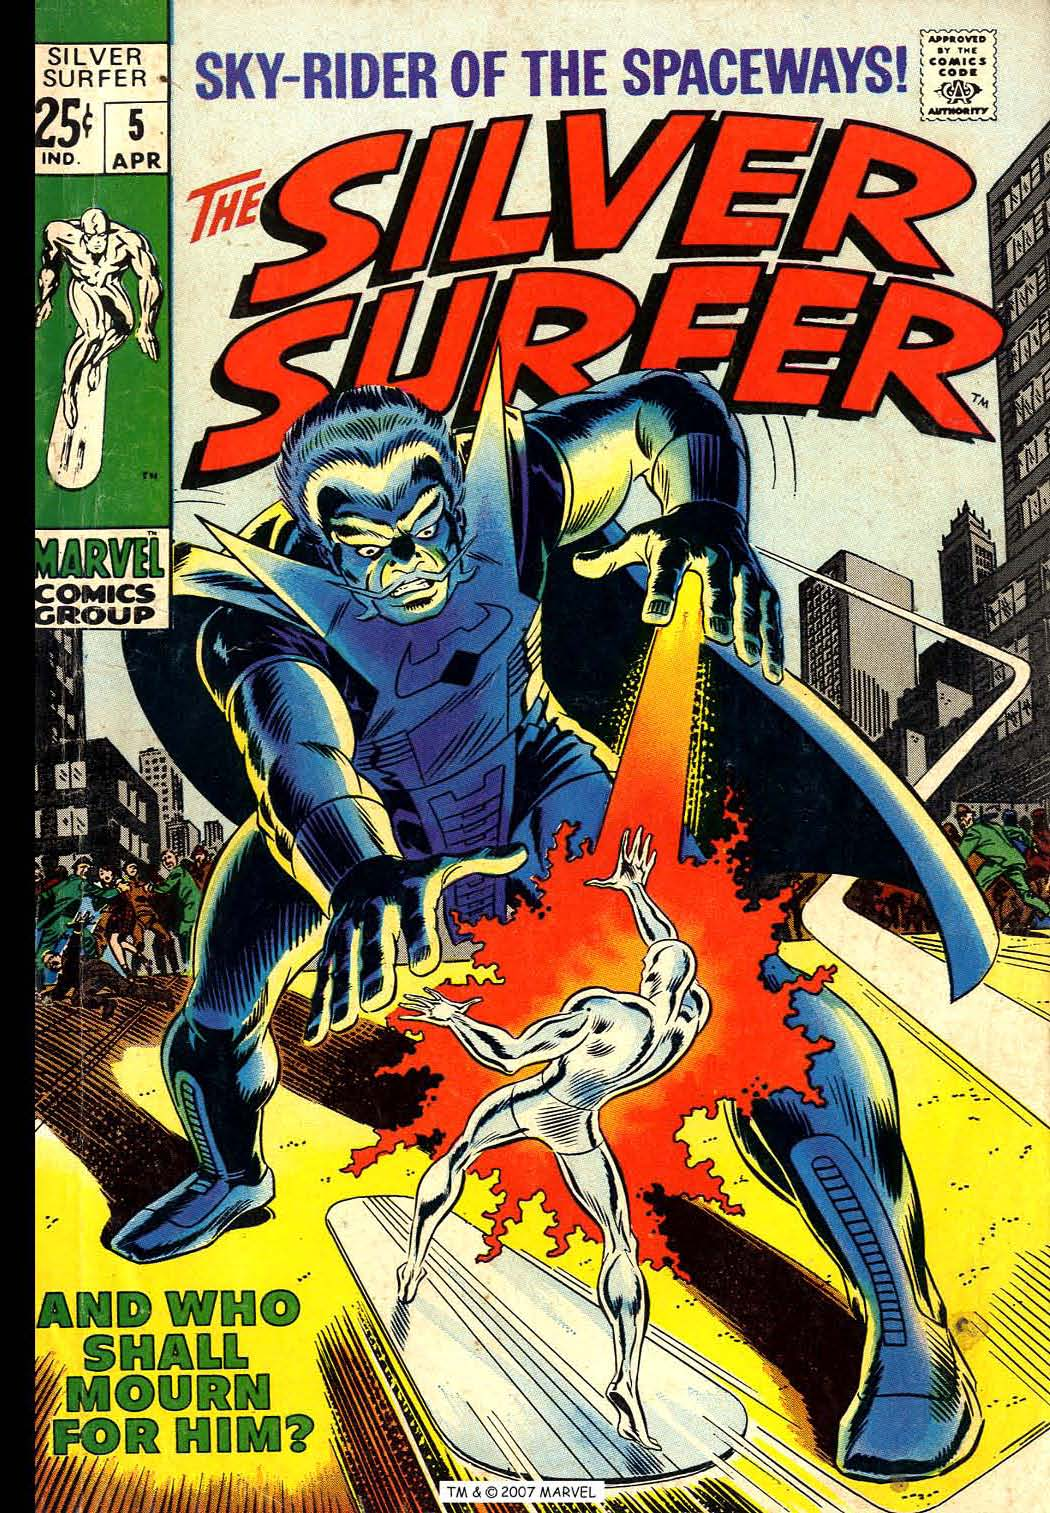 Read online Silver Surfer (1968) comic -  Issue #5 - 1